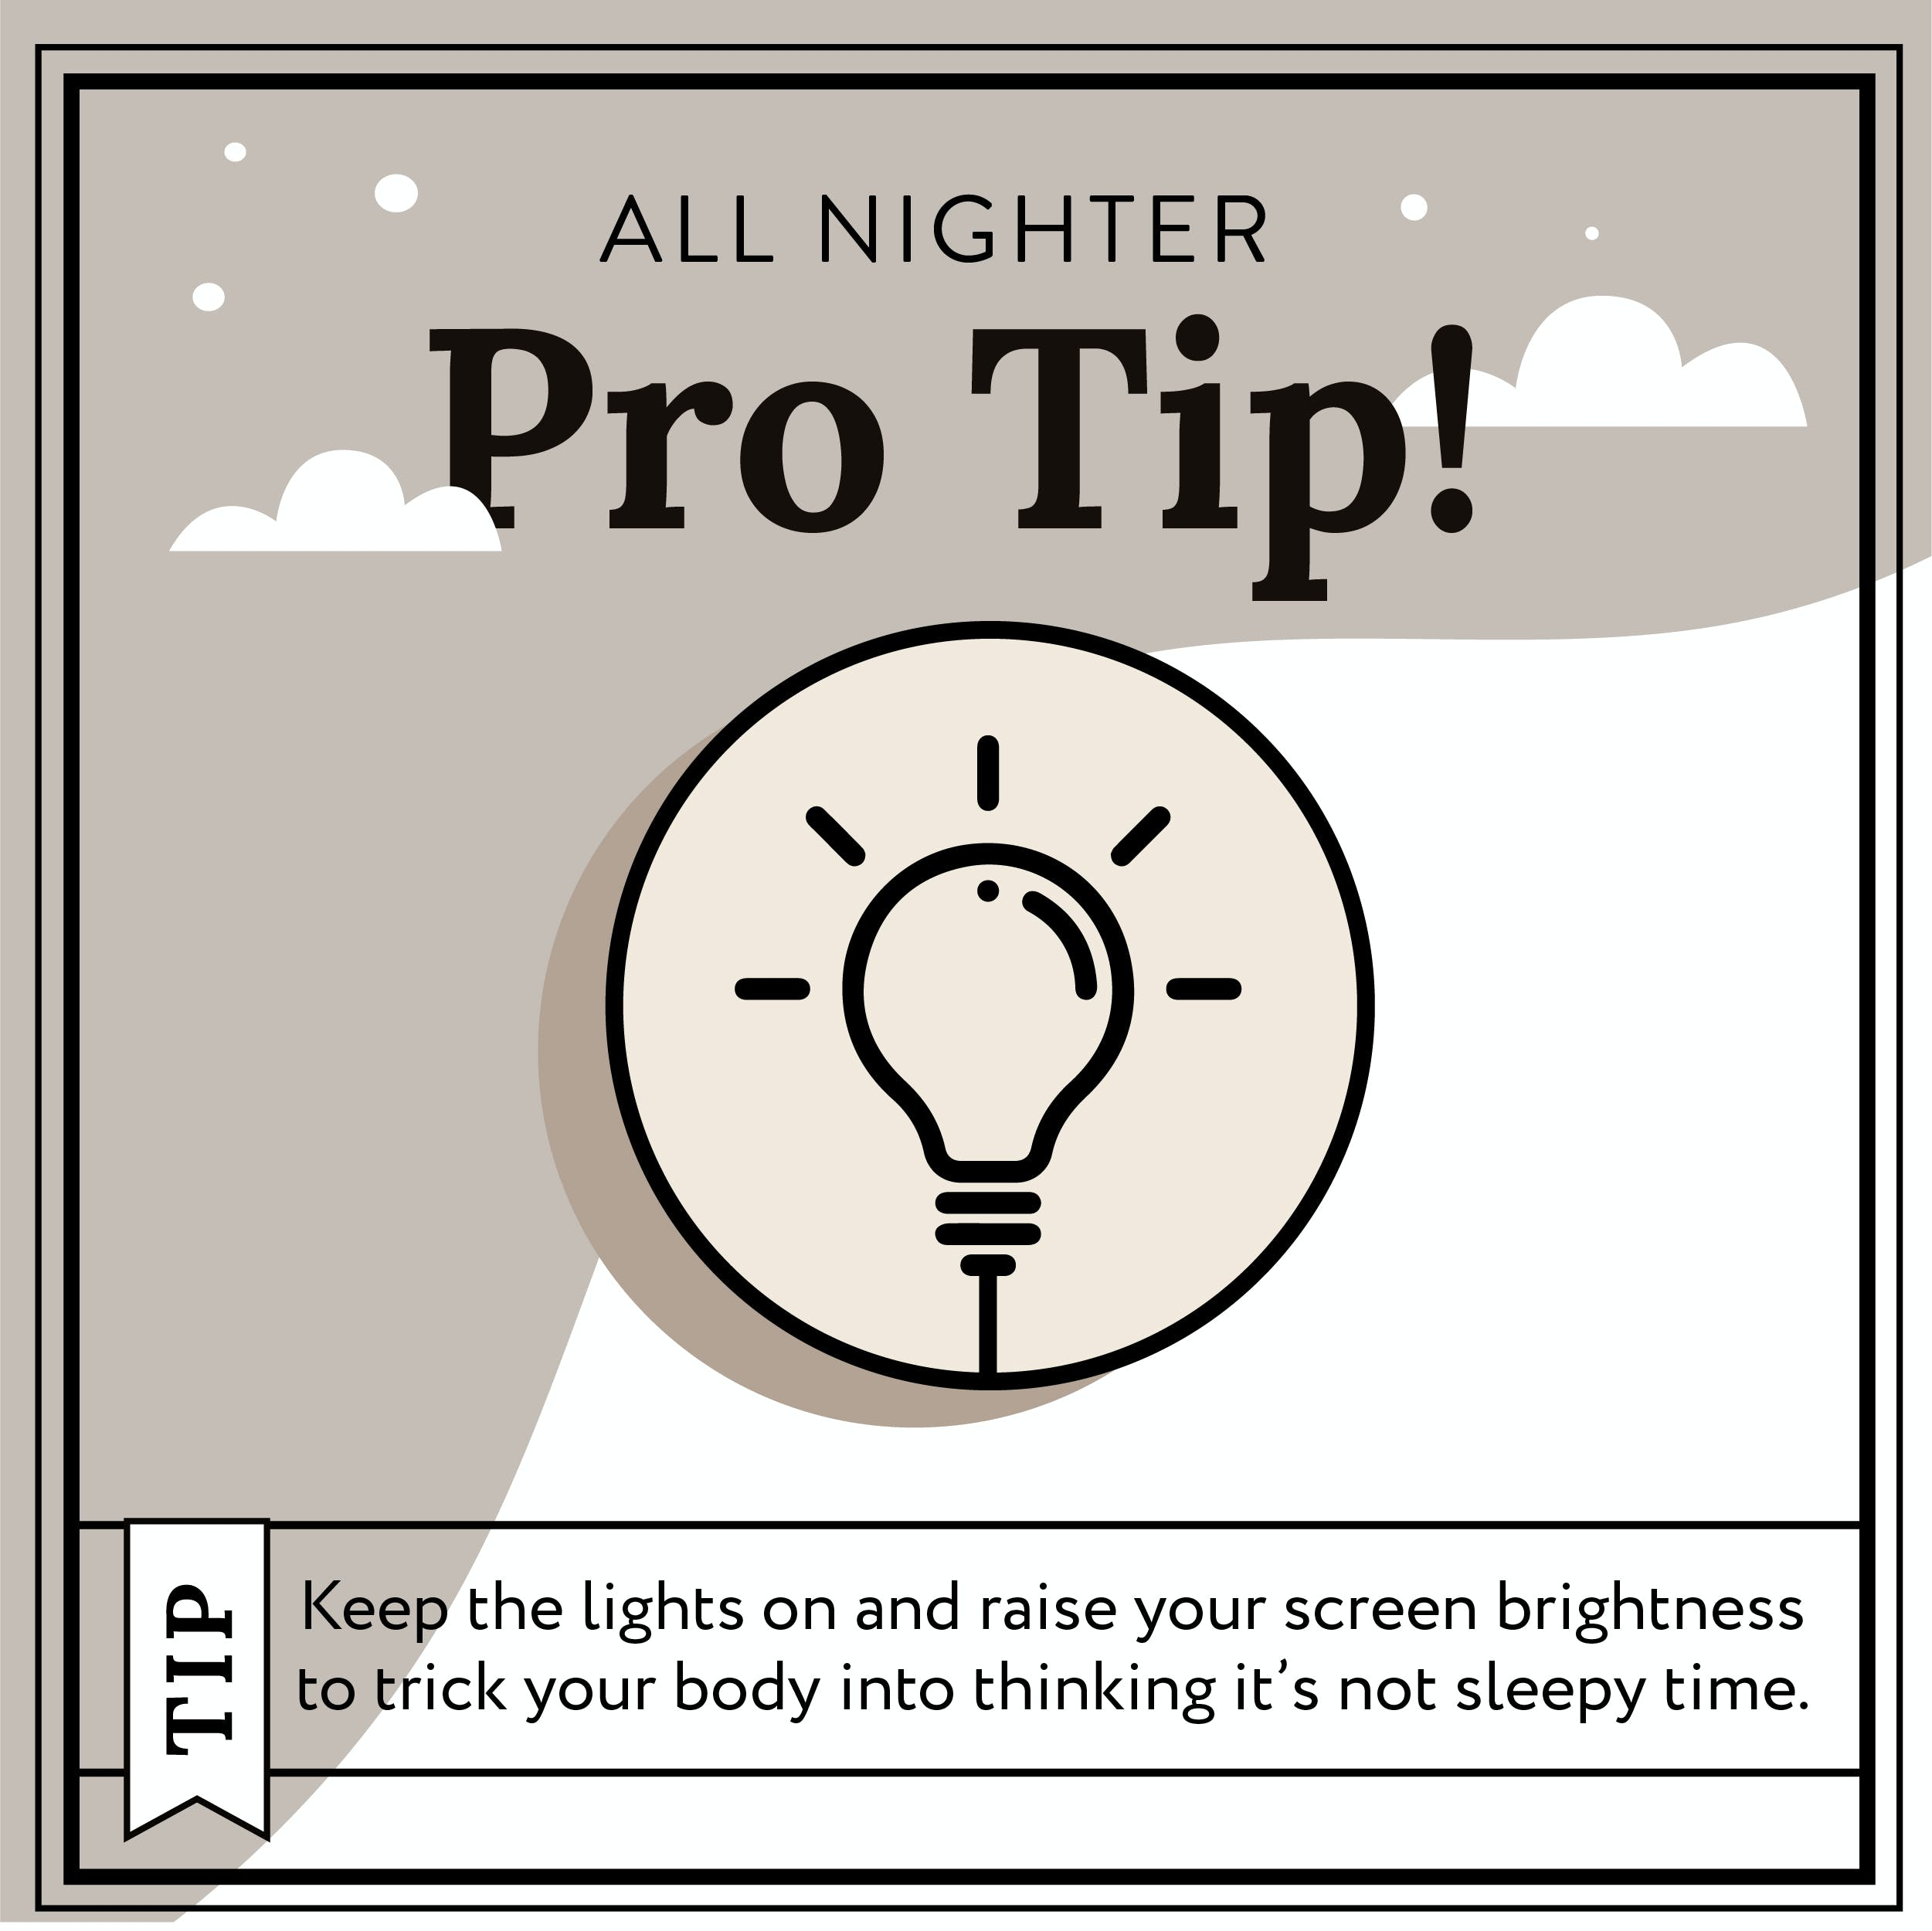 lightbulb with copy on it explaining how to use light to stay awake overnight